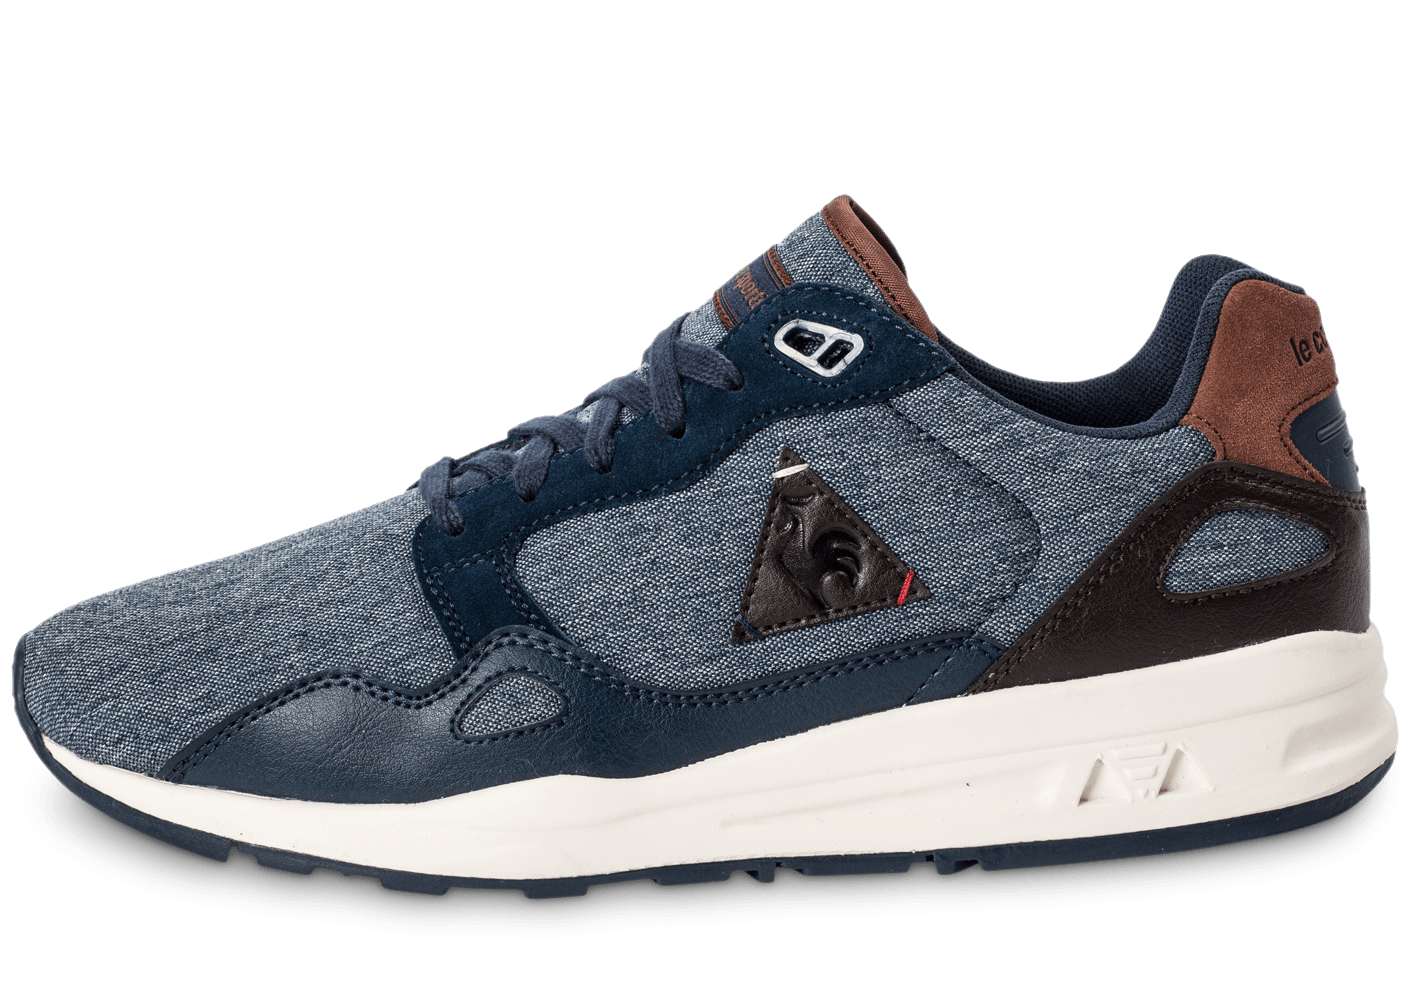 Coq Sportif Homme Chaussure